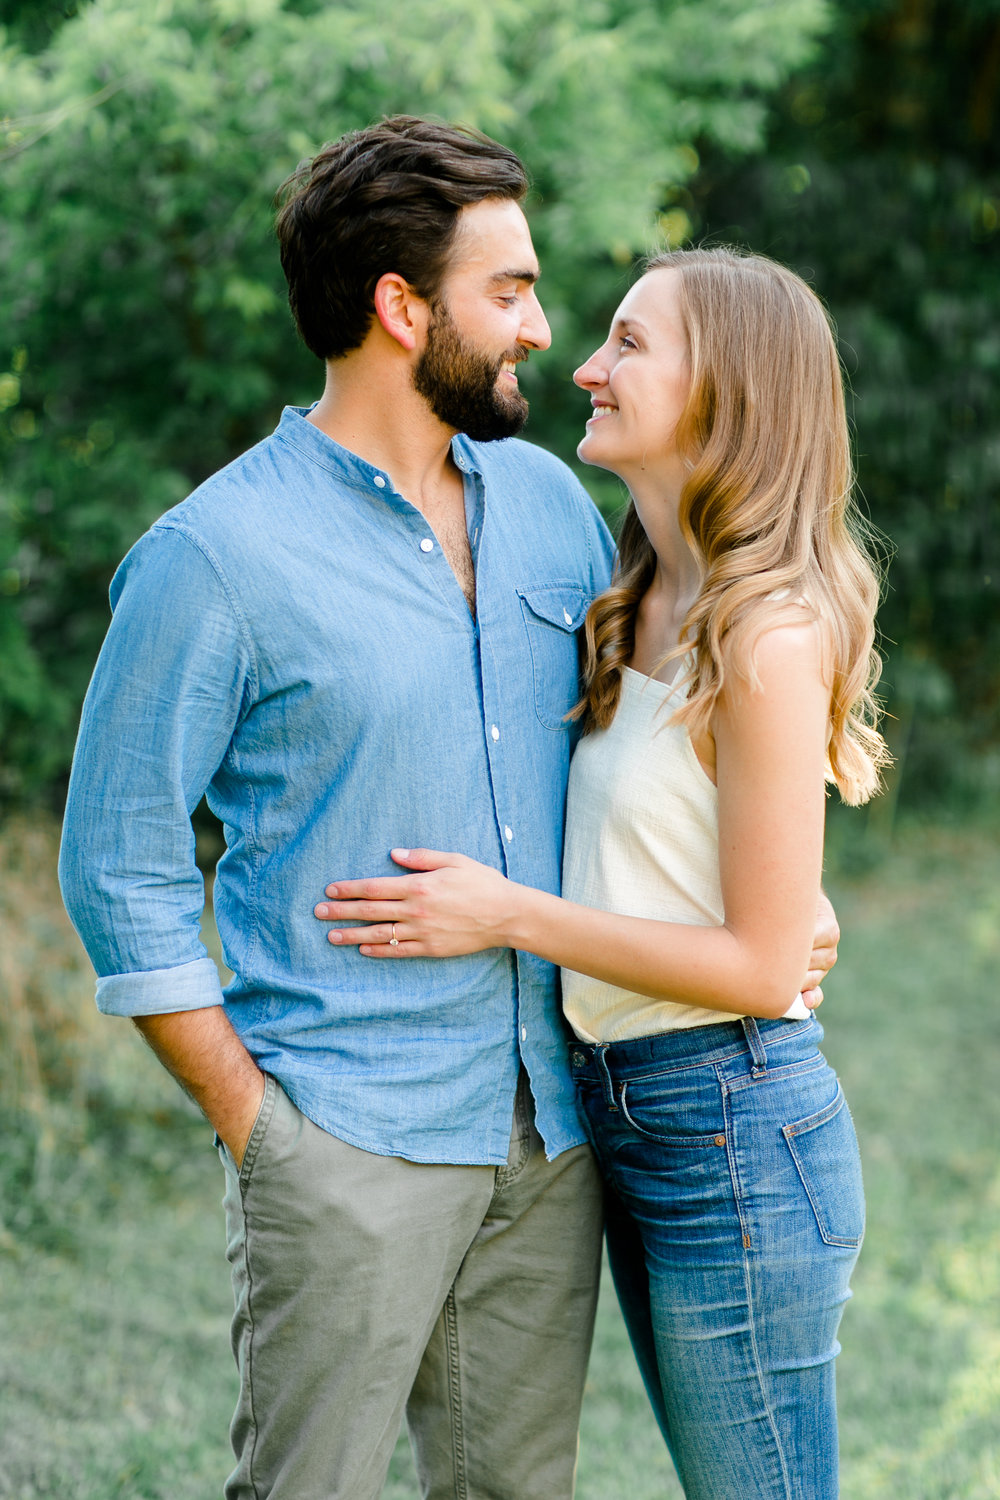 Austin-Texas-Wedding-Photographers-home-lifestyle-engagement-session-35.jpg